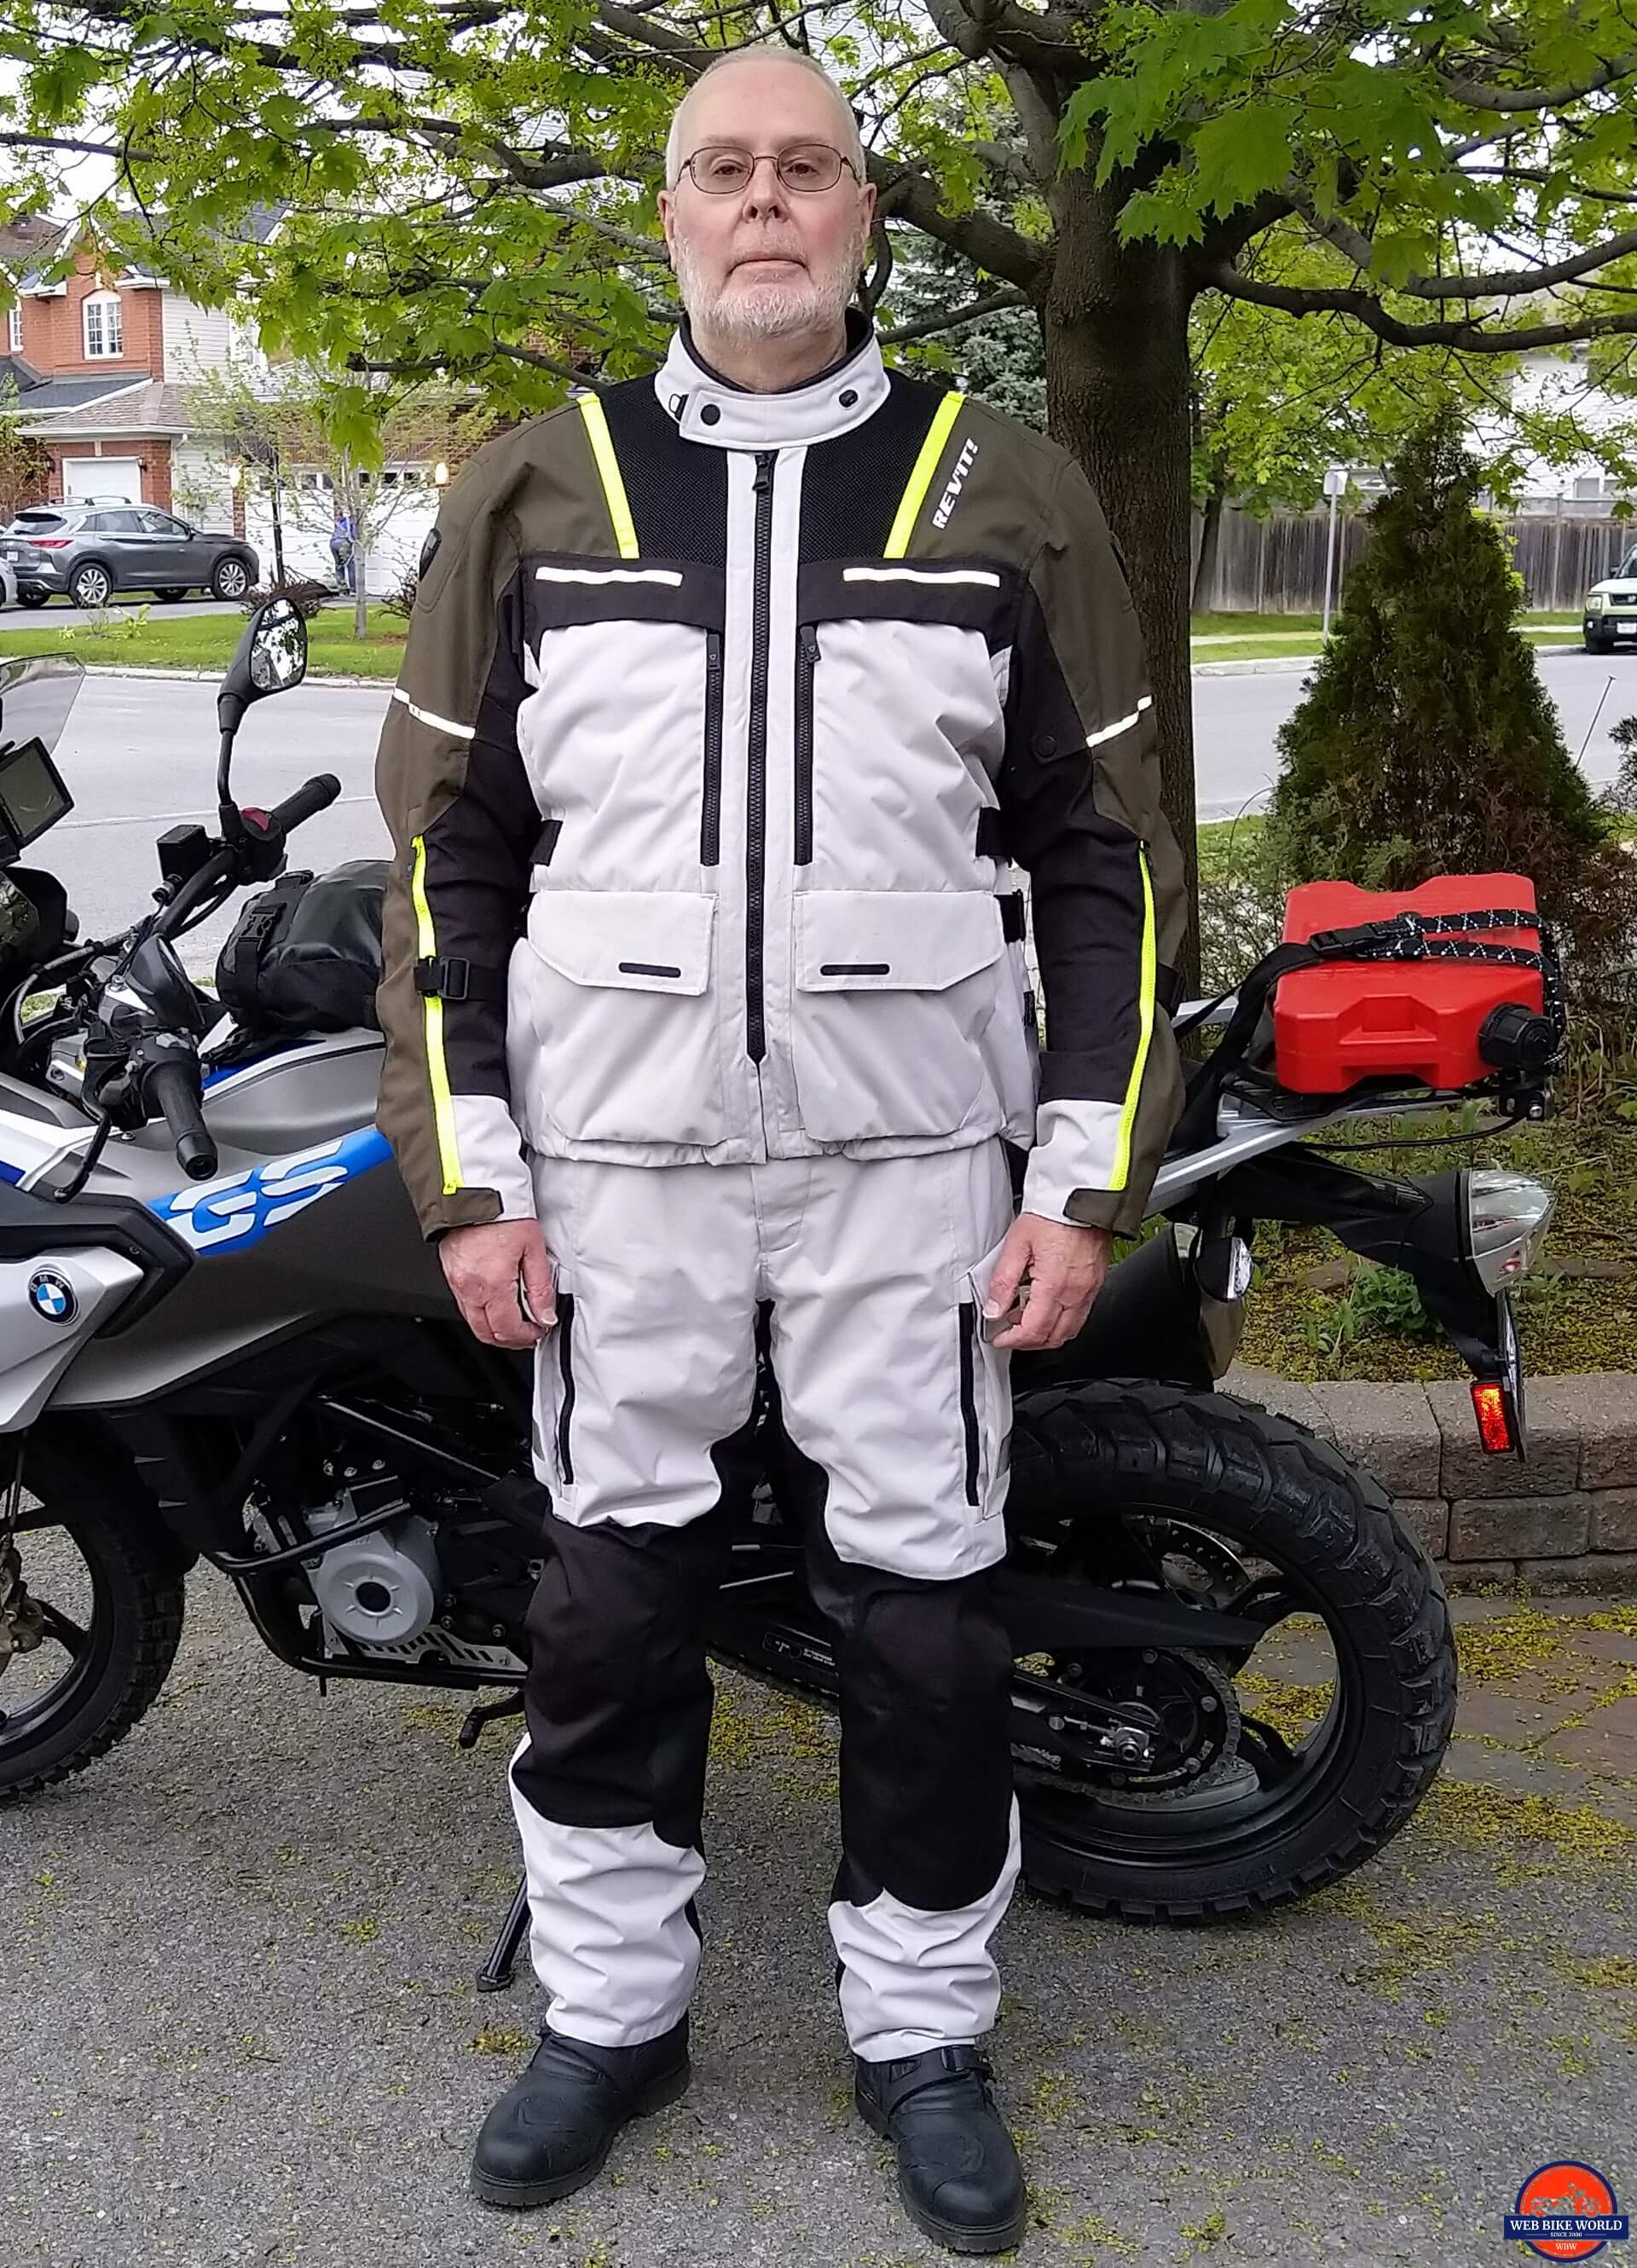 REV'IT! Offtrack Adventure Jacket full view worn by Bruce with Offtrack Pants